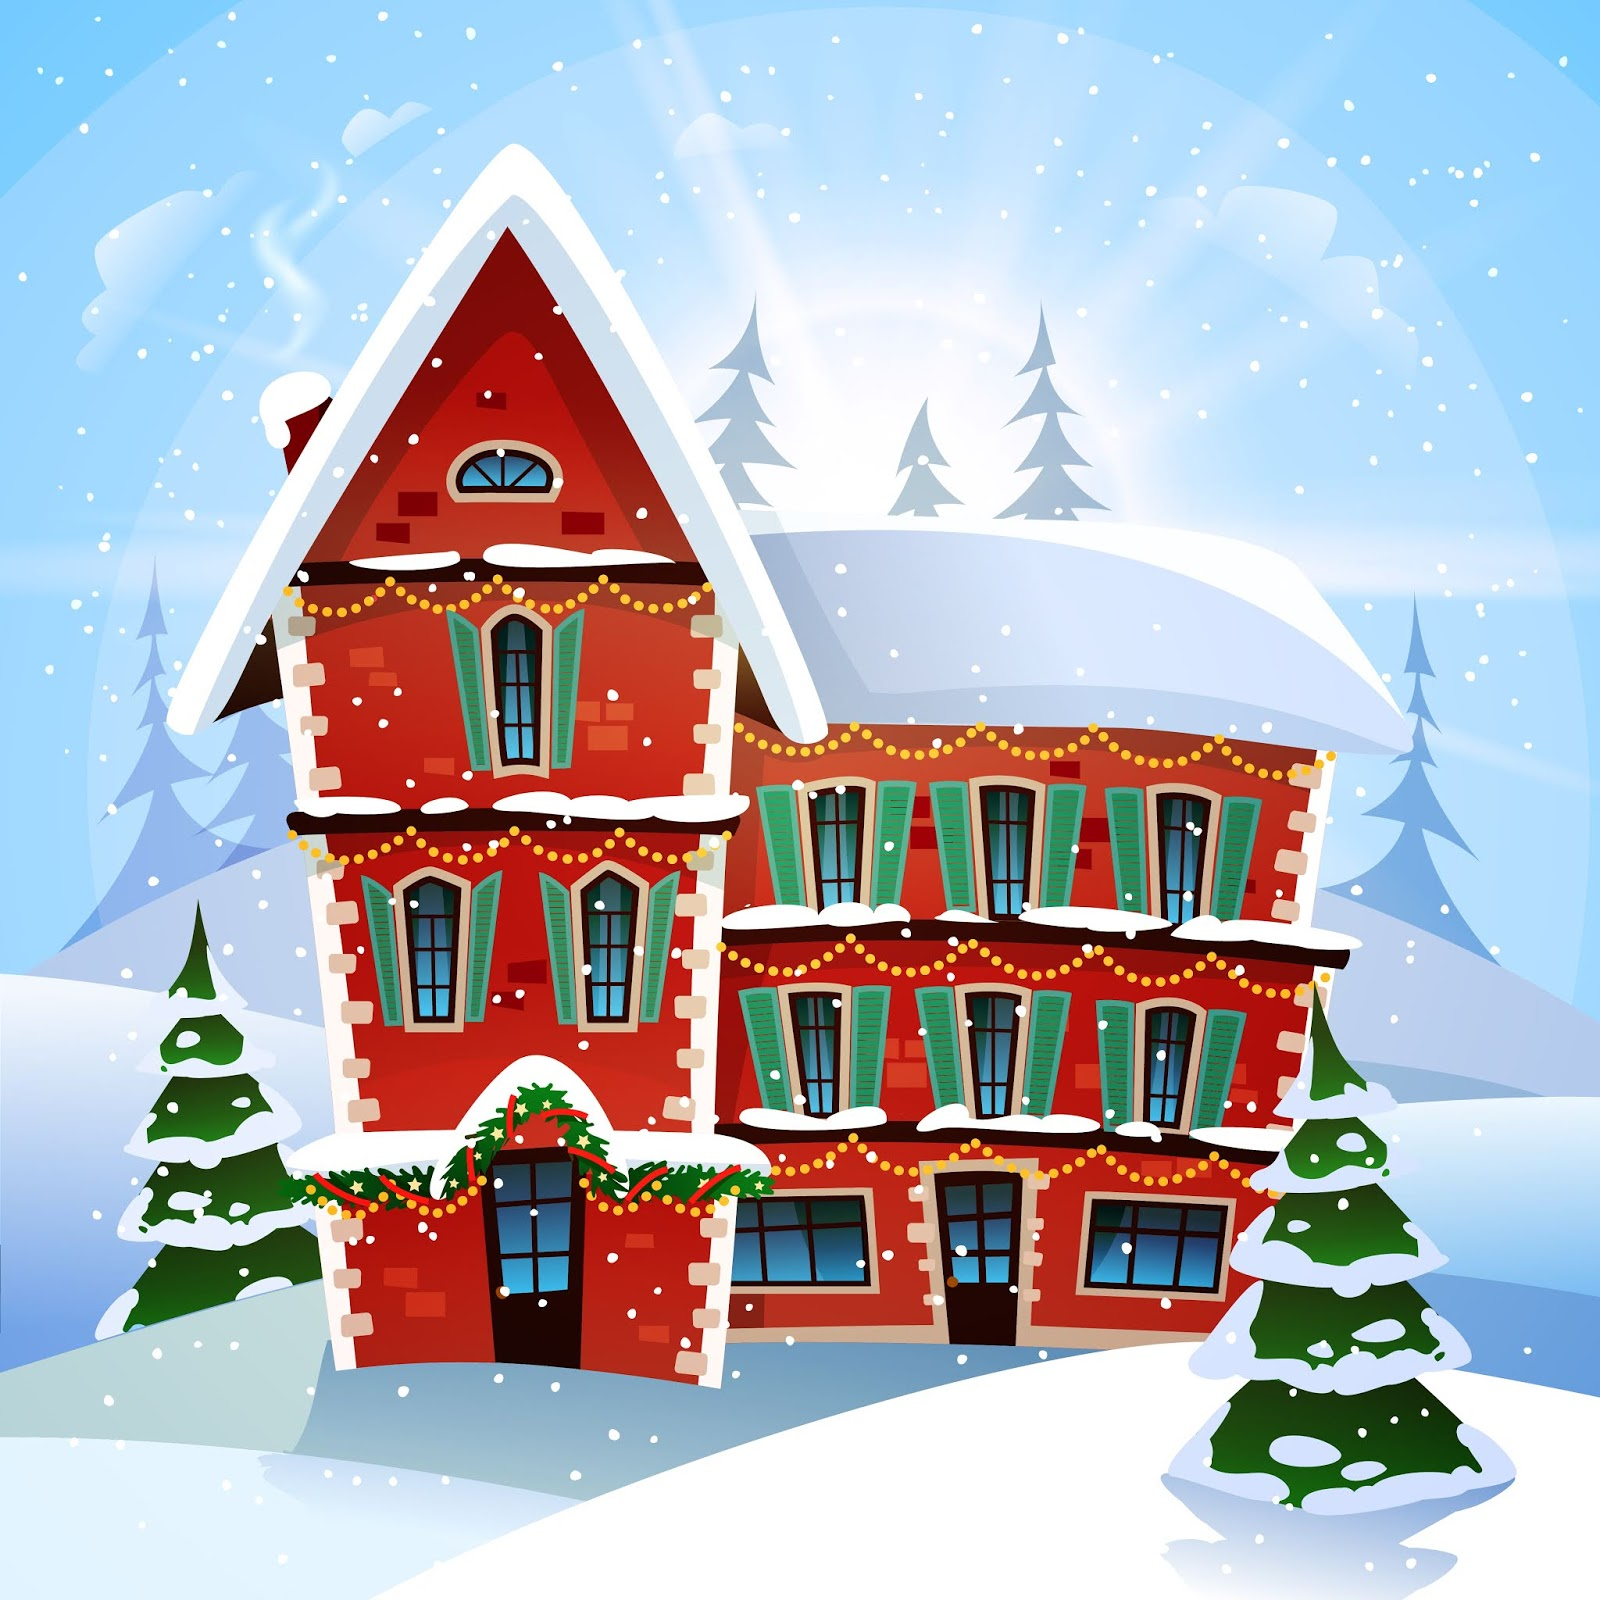 Christmas Vector Illustration Free Download Vector CDR, AI, EPS and PNG Formats